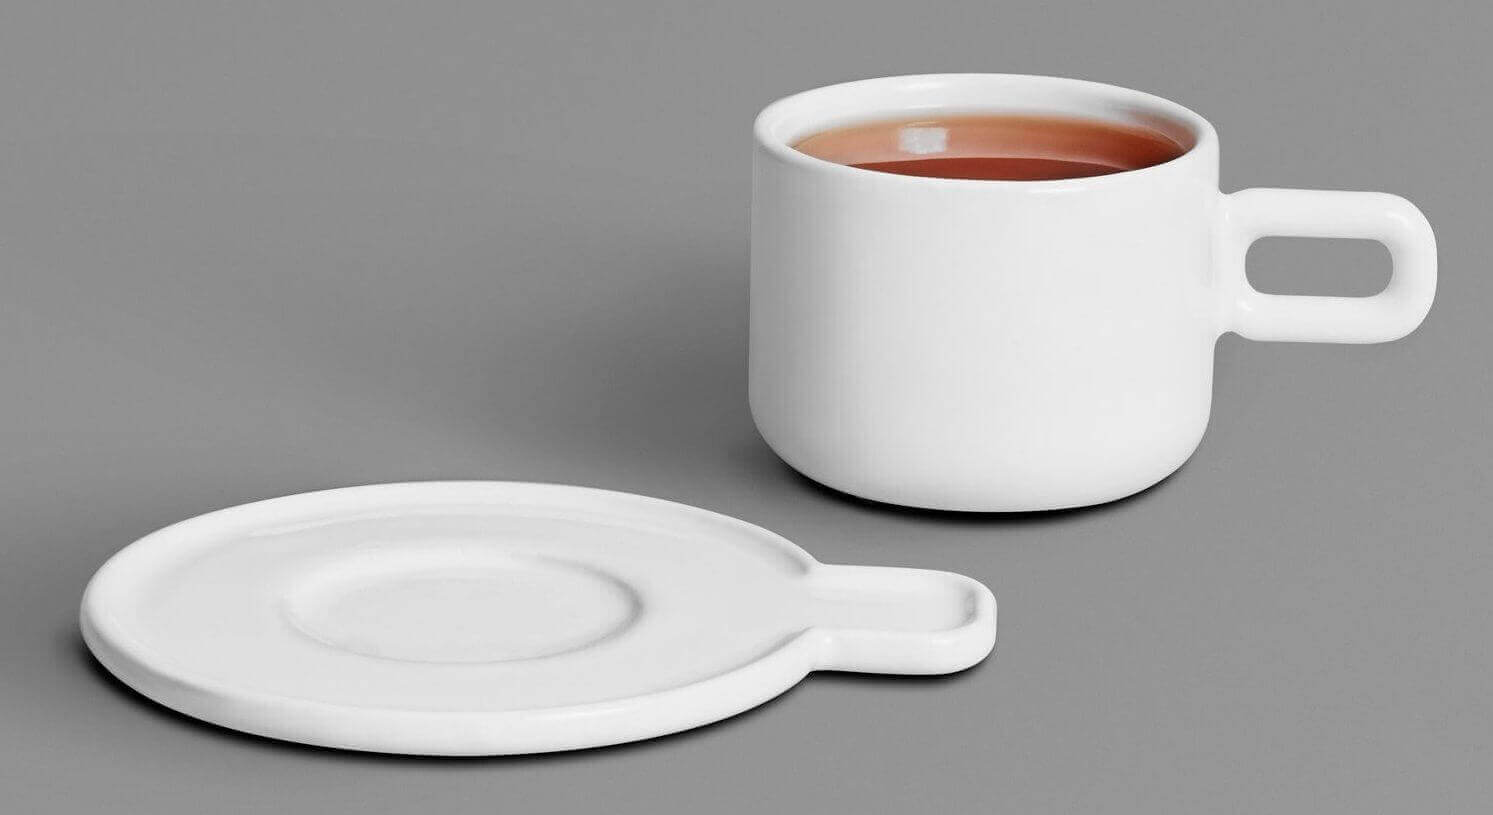 3D Printed Cup and Saucer added to Othr Collection | All3DP